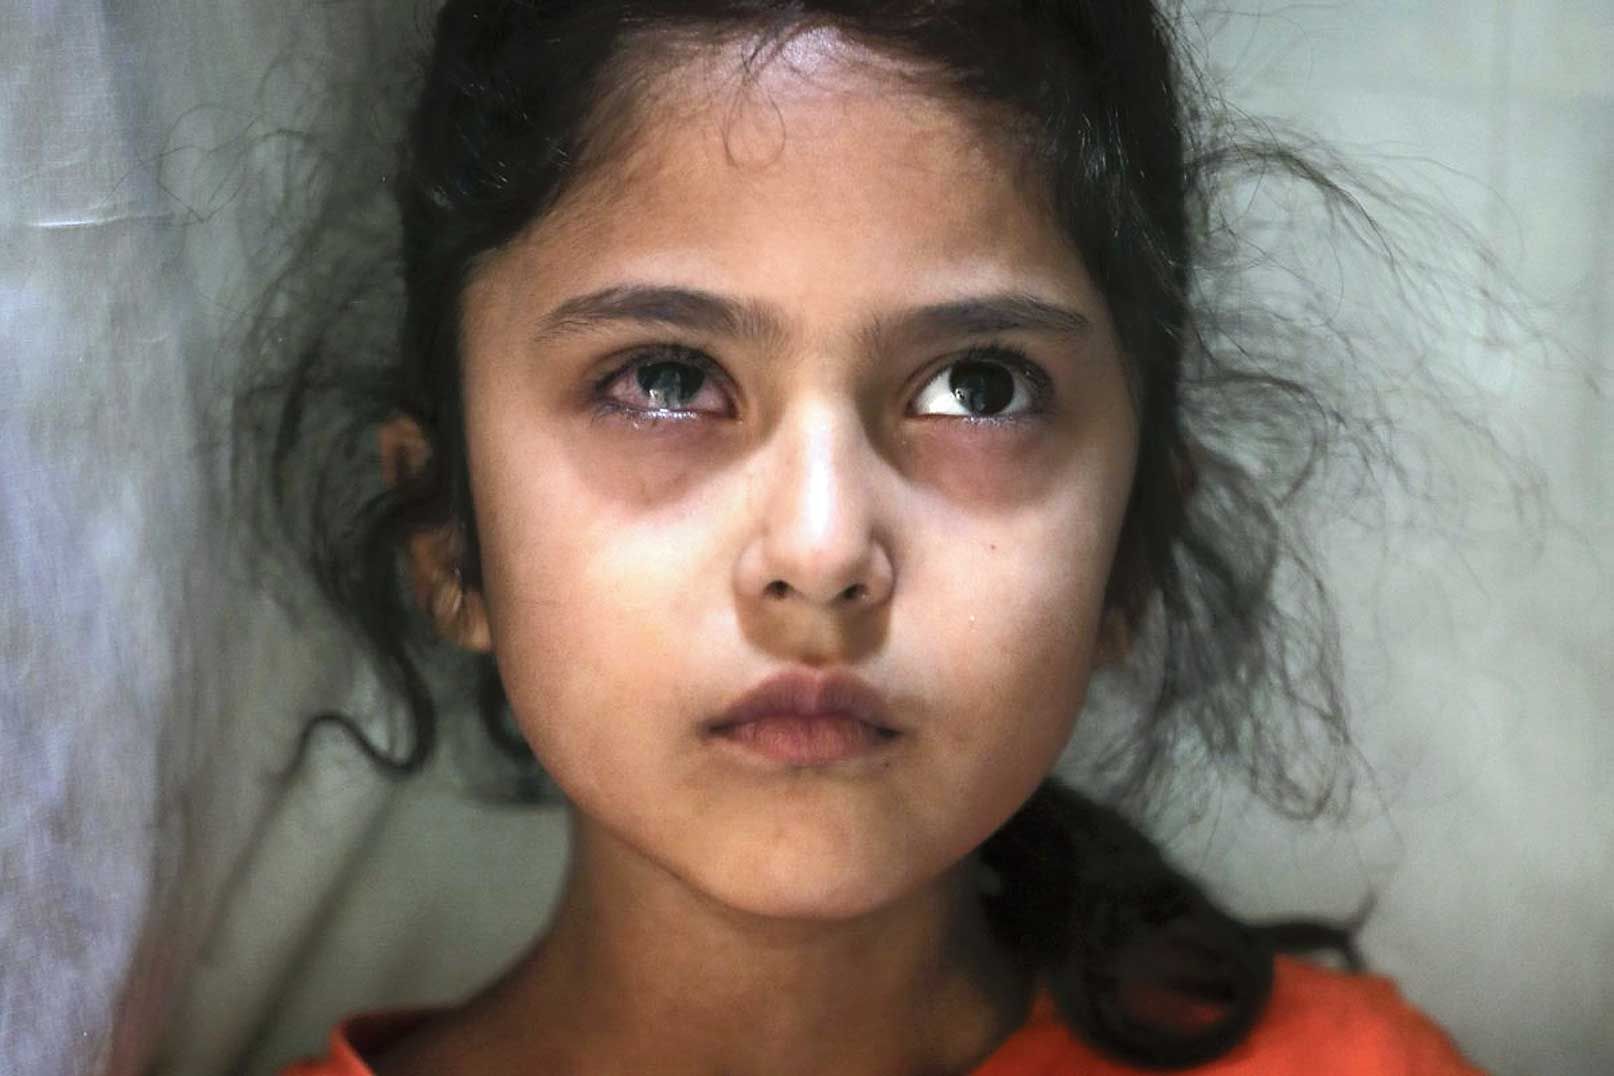 Associated Press photographer Mukhtar Khan's photograph of Muneefa. This was one of the 20 pictures for which three Associated Press photographers won the 2020 Pulitzer Prize for Feature Photography.